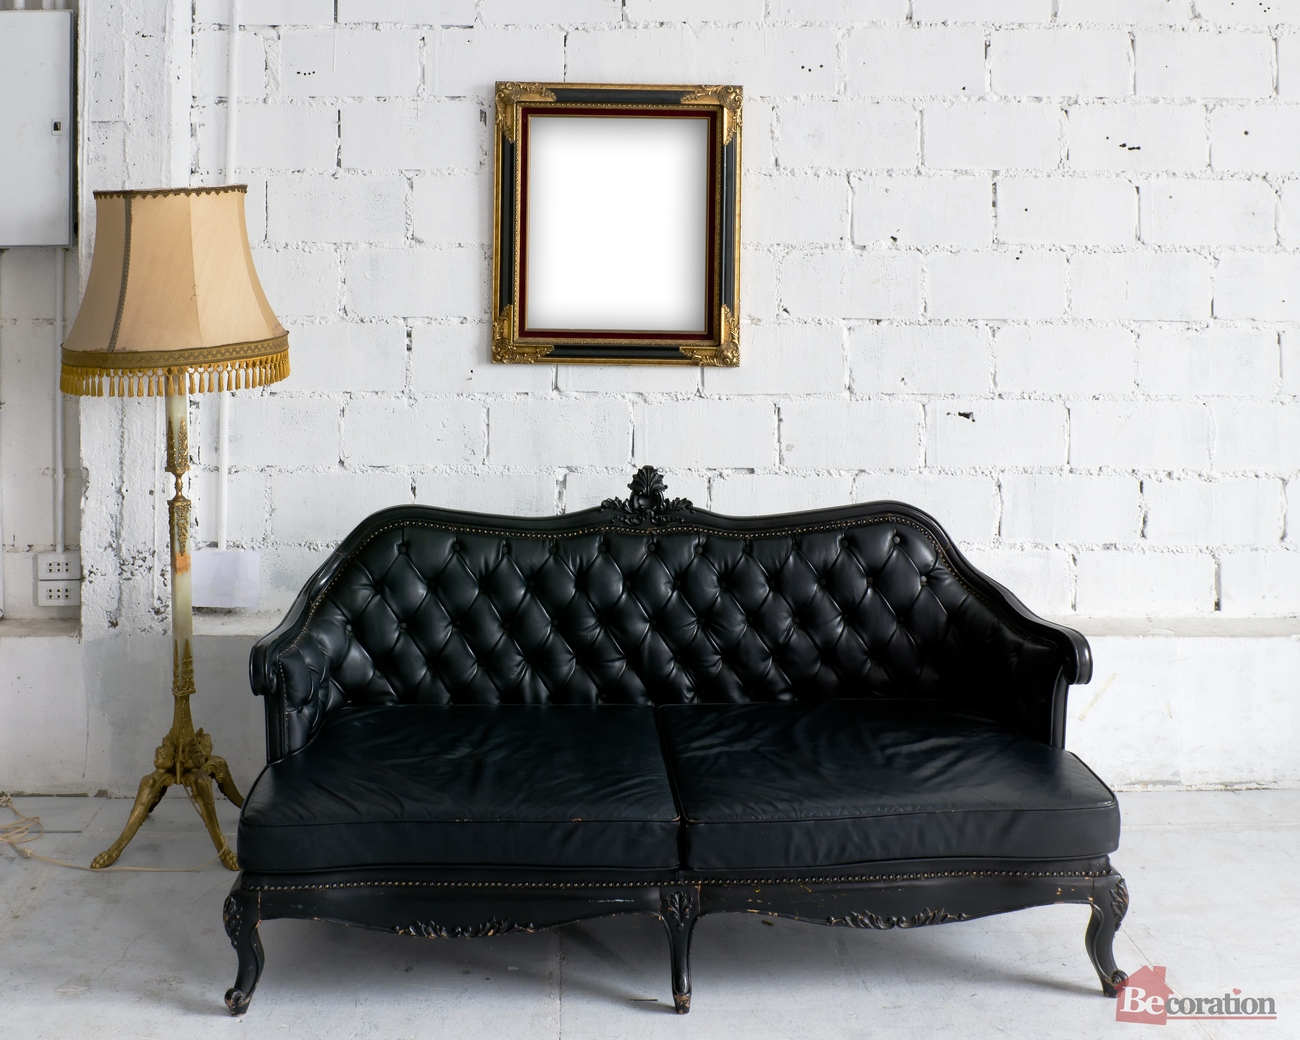 Old black leather sofa with lamp and wood picture frame